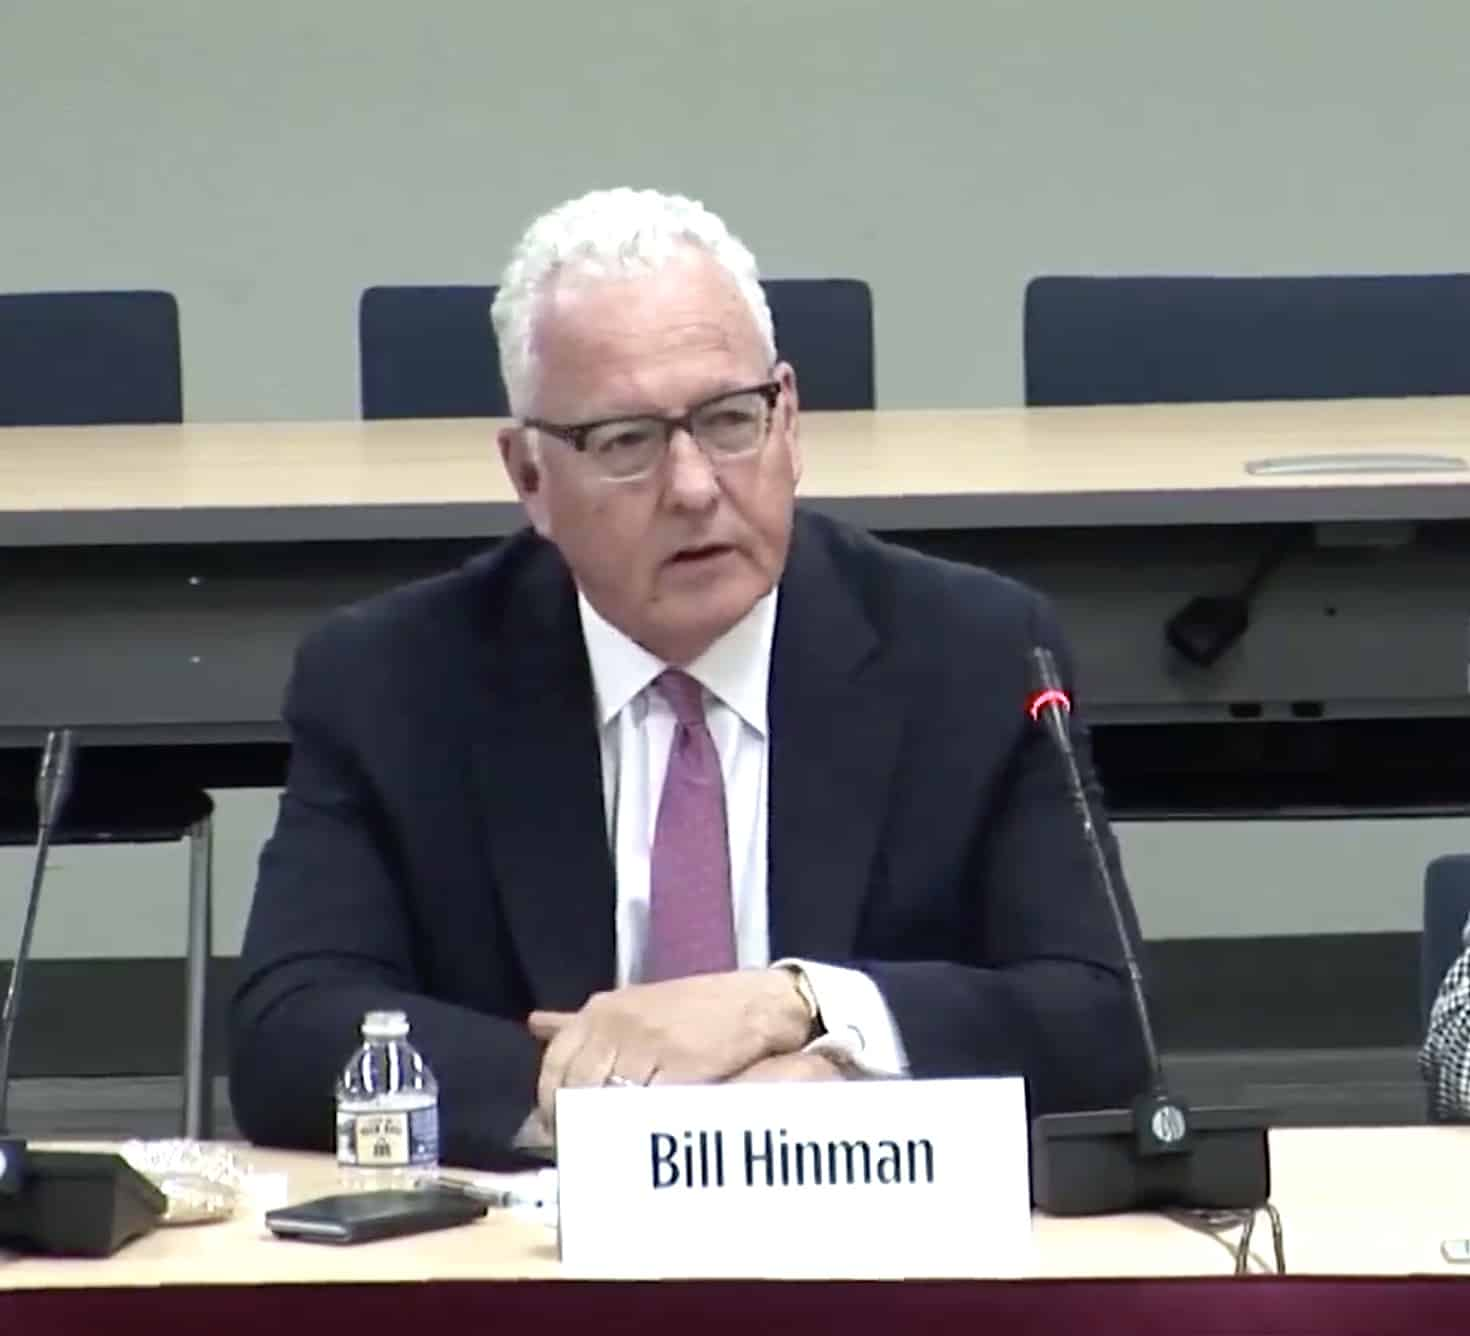 SEC Director of CorpFin Bill Hinman Provides Crowdfunding Update at Small Business Capital Formation Advisory Committee Meeting